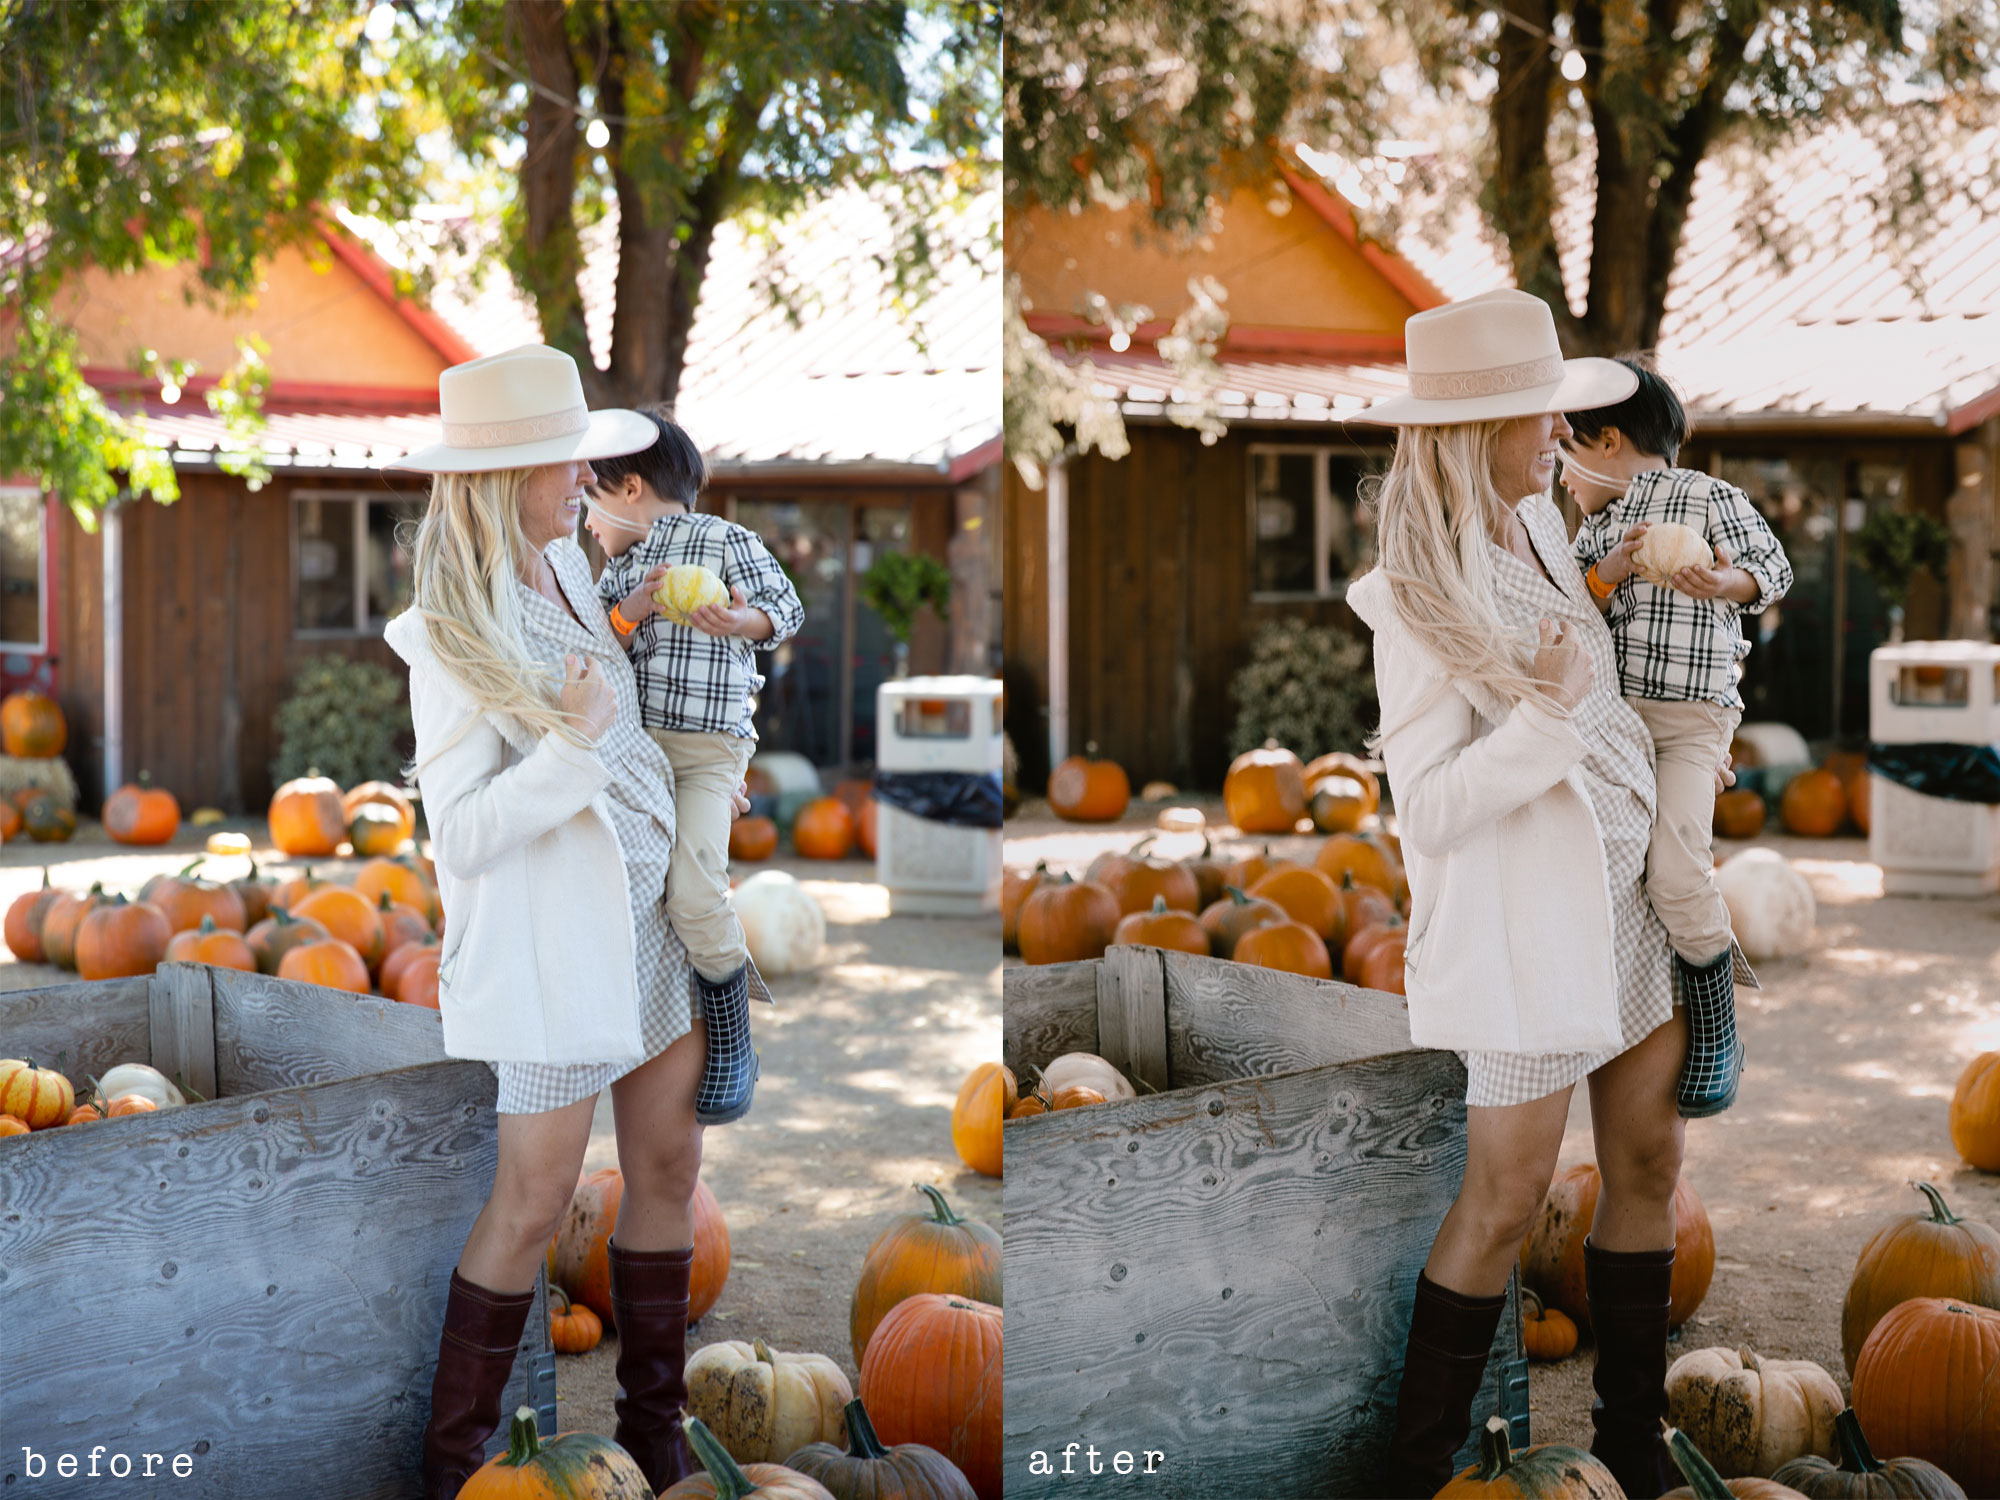 new presets from the lovedesignedlife #theldlpresets #lightroompresets #pumpkinpatch #photoediting